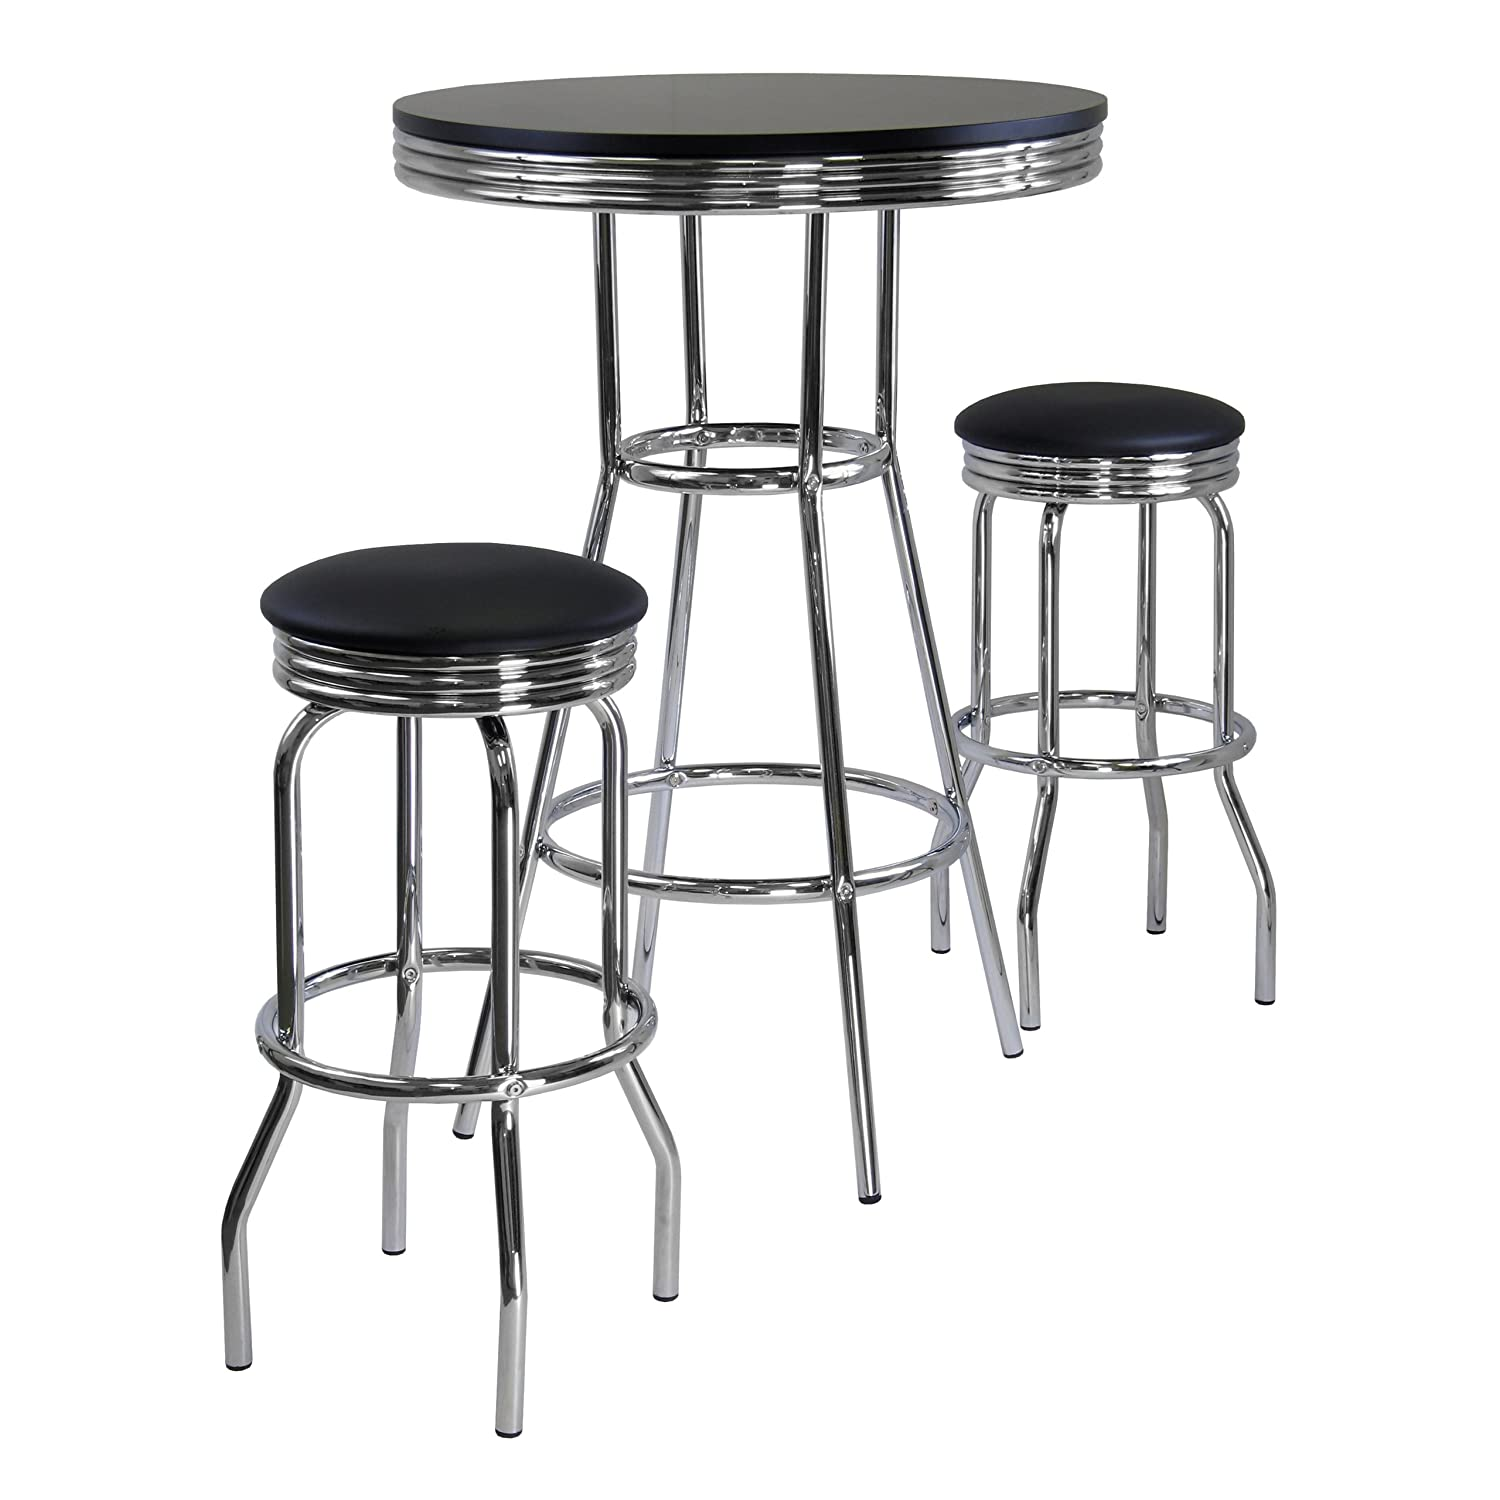 High Quality Amazon.com: Winsome Summit Pub Table And 2 Swivel Stool Set, 3 Piece:  Kitchen U0026 Dining